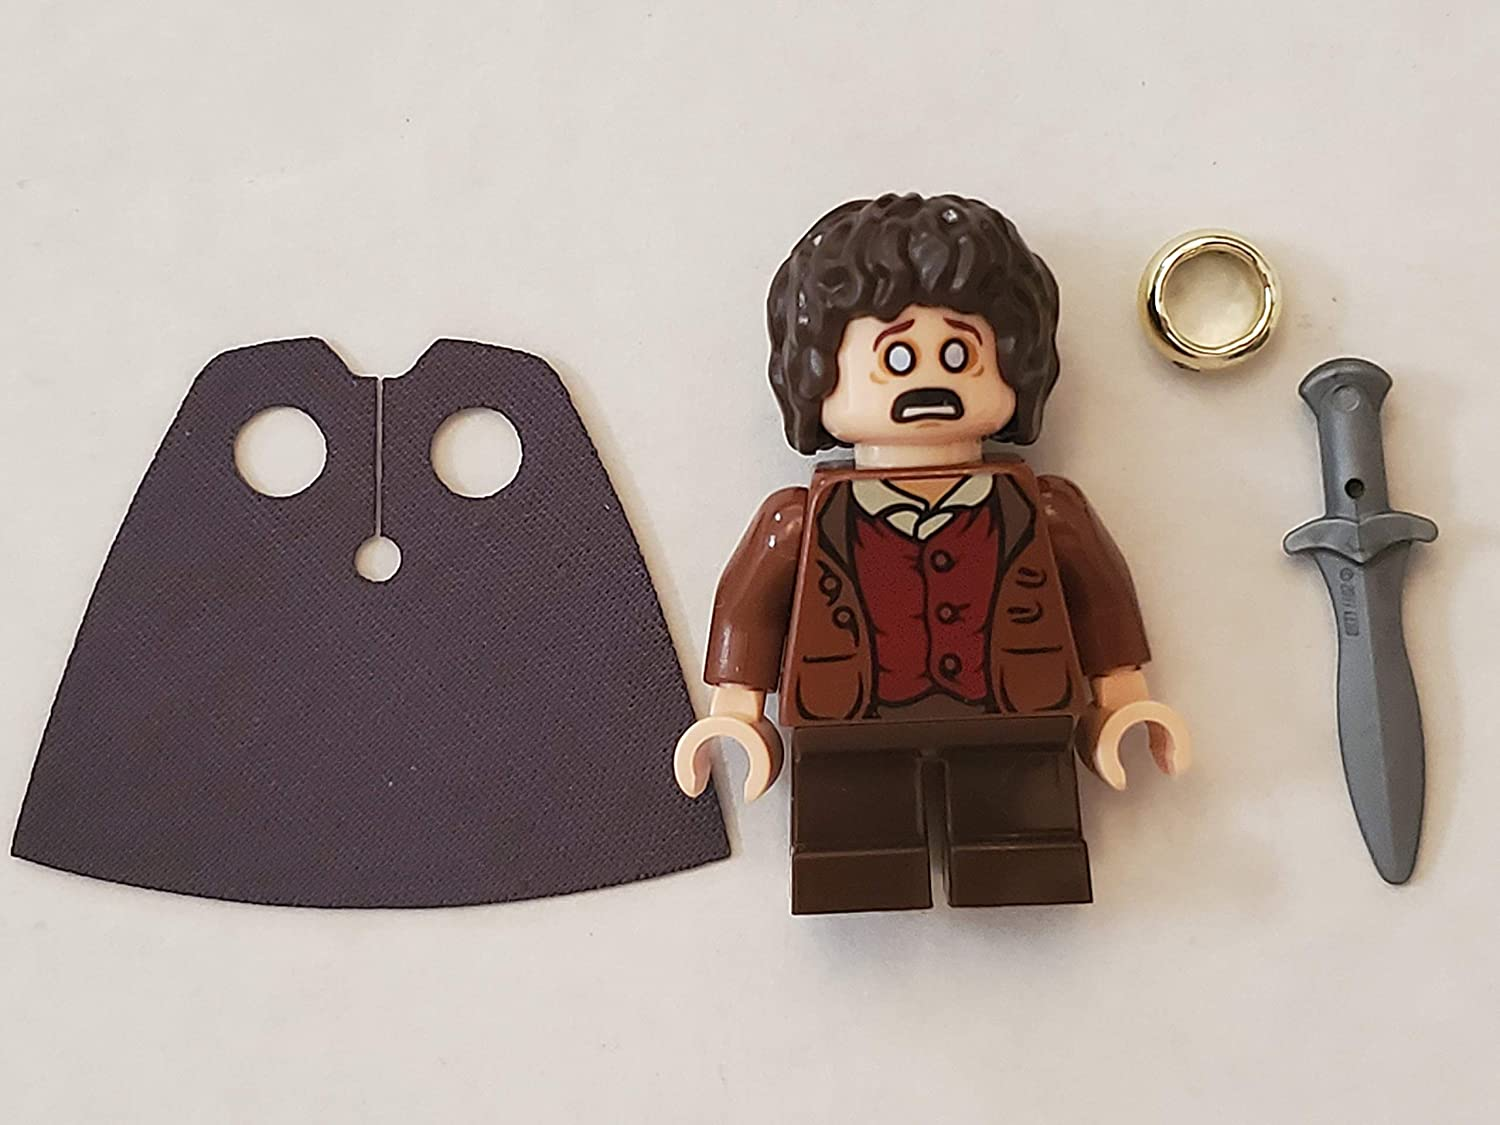 MOVIE GIFTS LORD OF THE RINGS MINI FIGURE,FITS LEGO TV